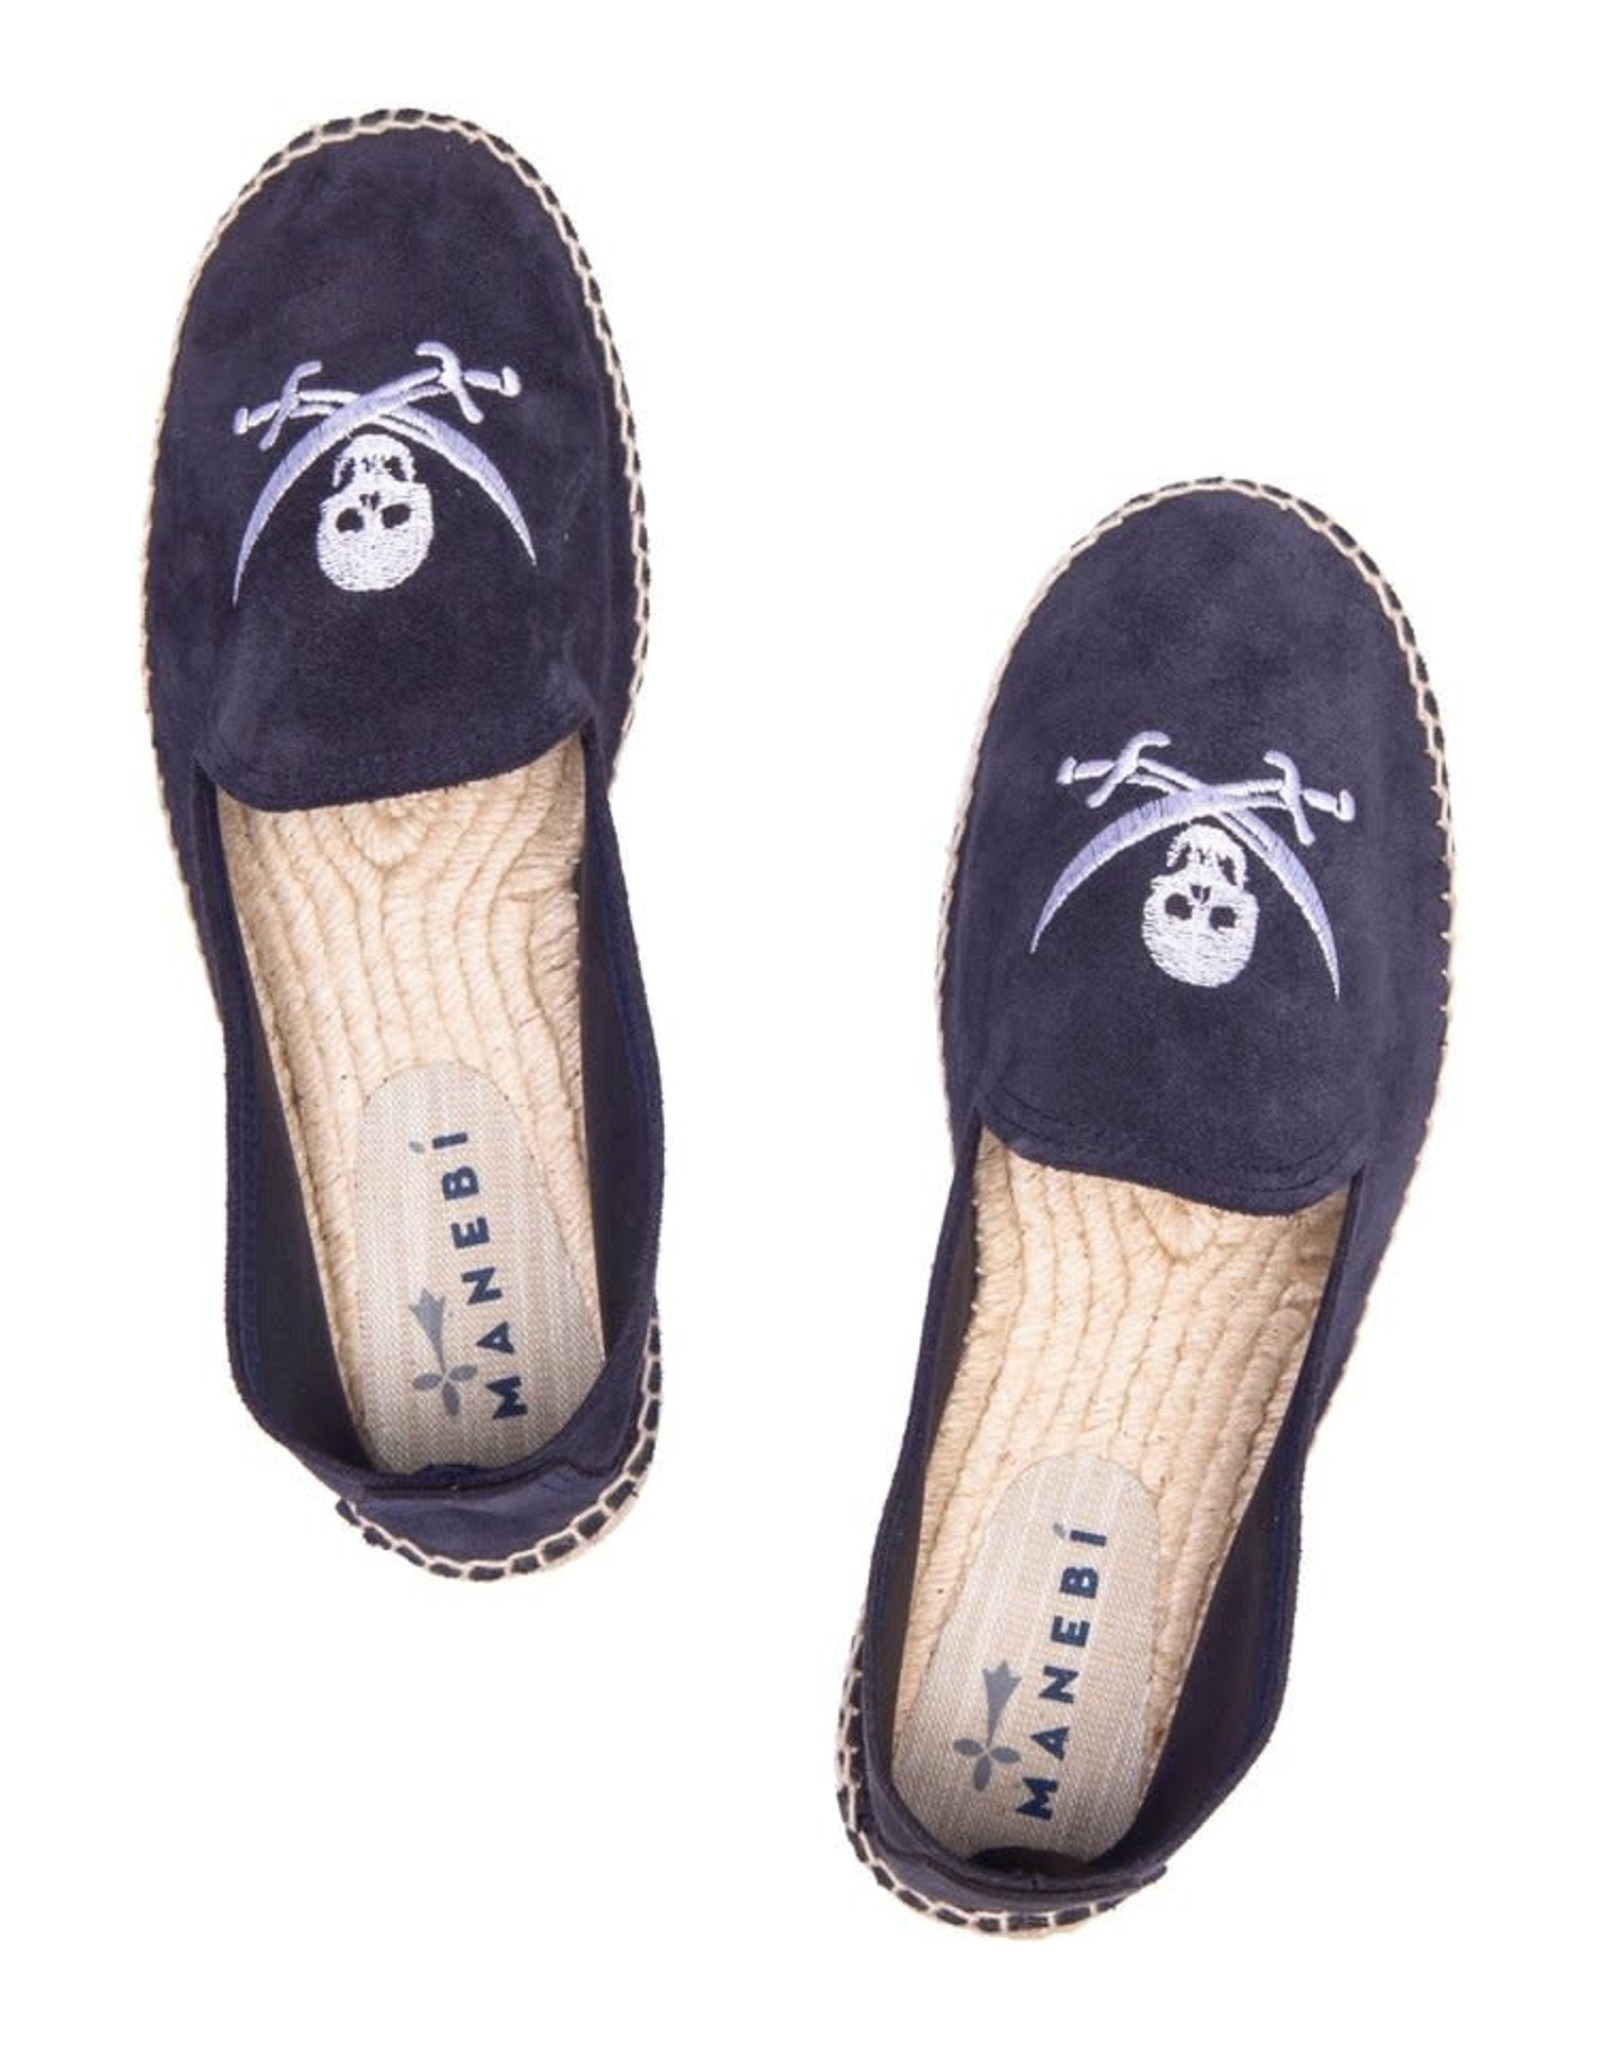 MANEBI Slippers P Blue + White Skull Suede Palm Springs